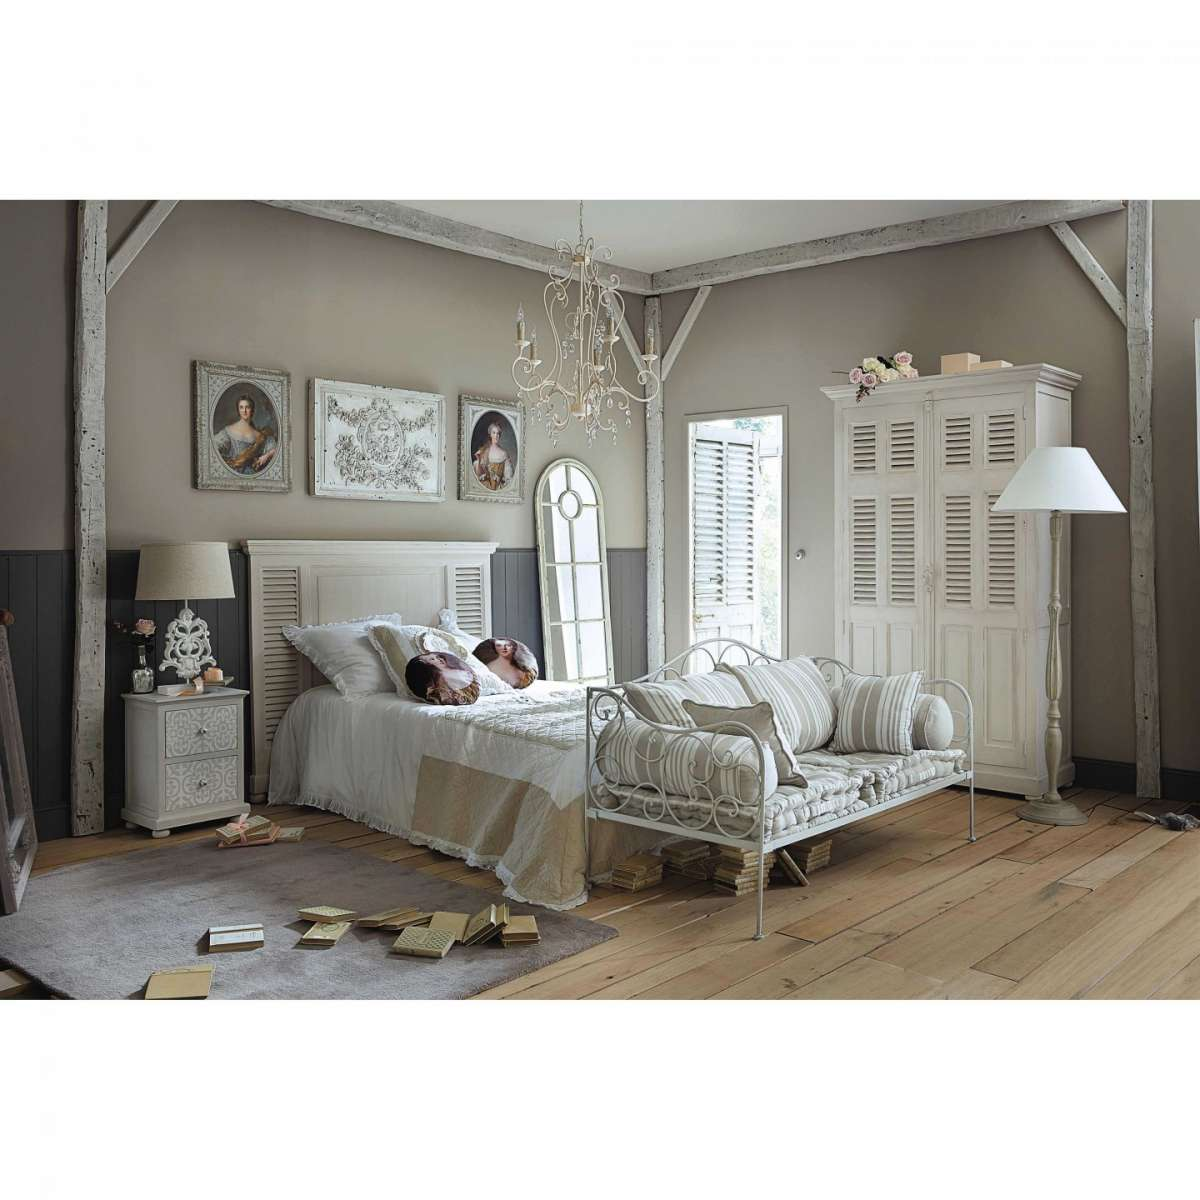 Emejing Camera Da Letto In Stile Provenzale Ideas - House Design ...